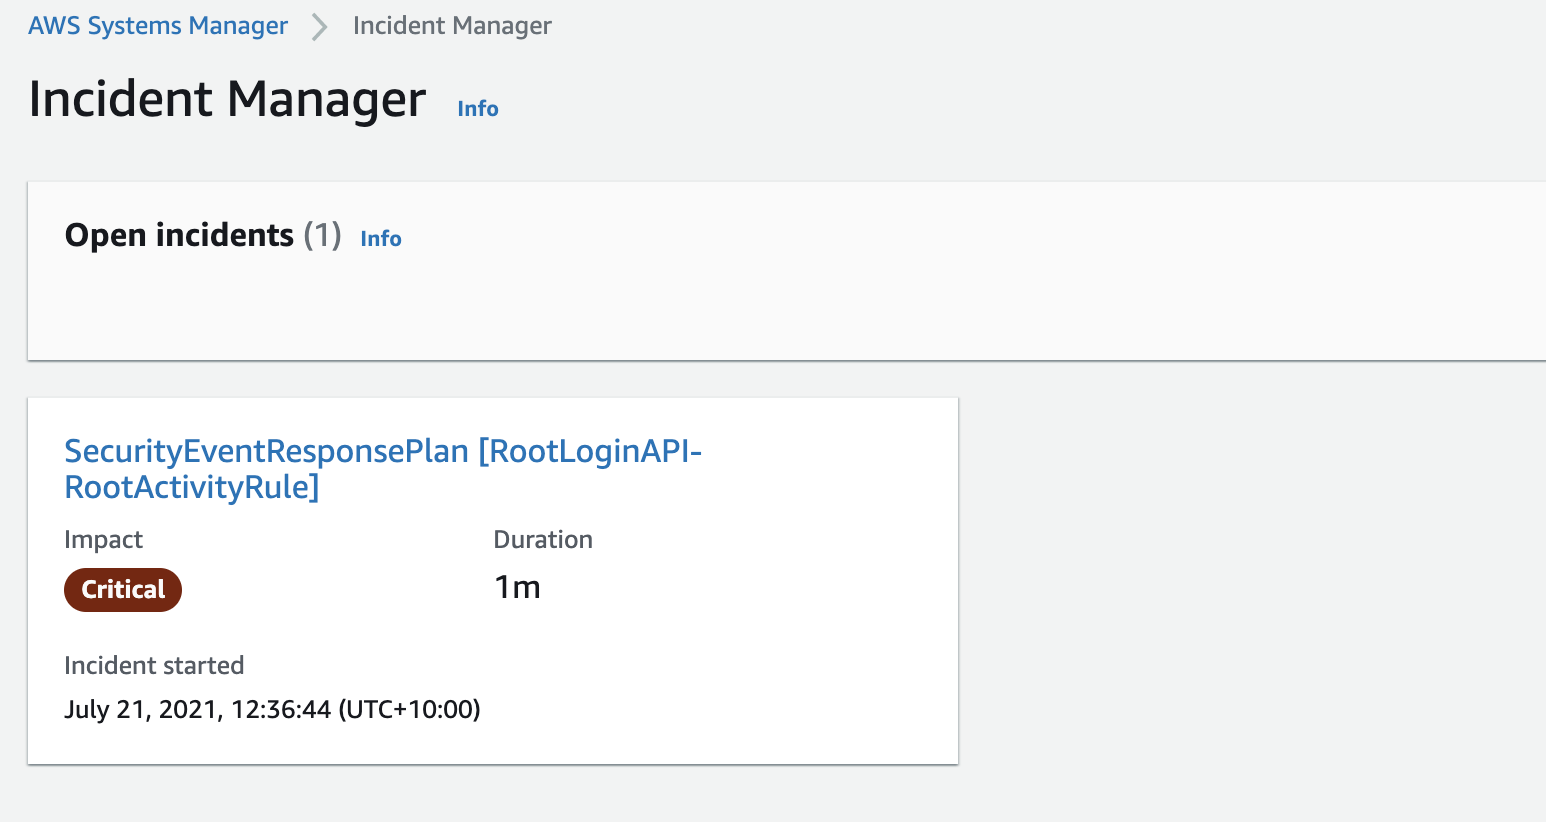 Figure 5: Incident Manager open incidents